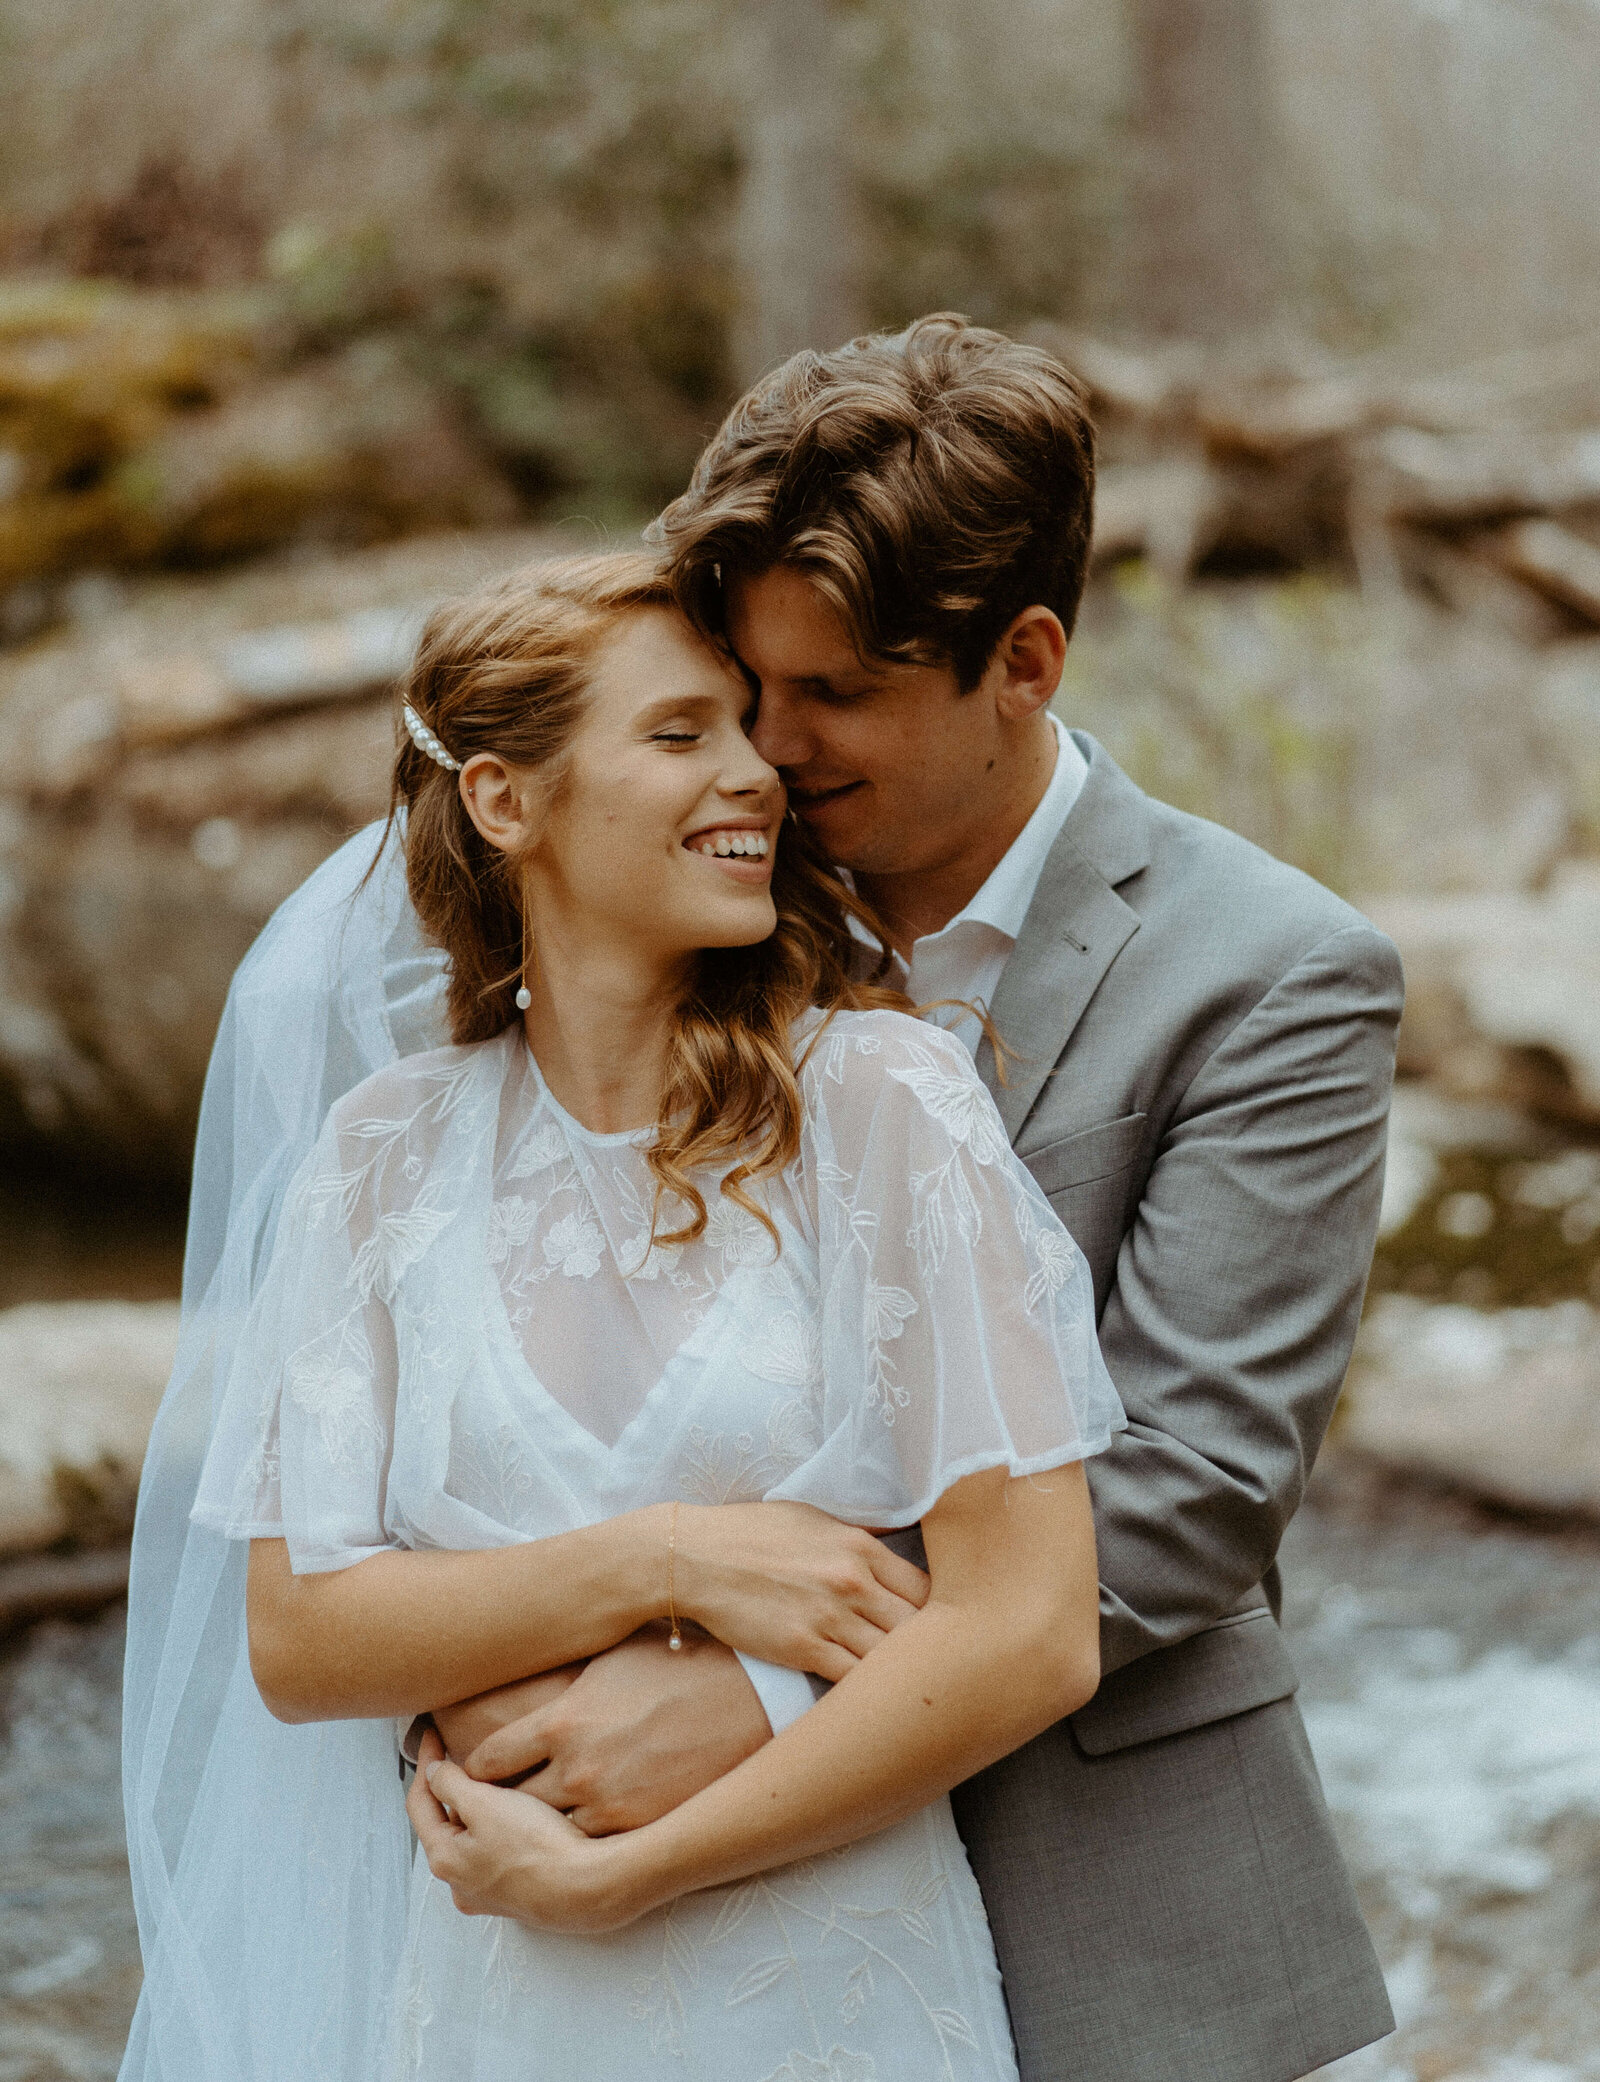 Leandra-Creative-Co-Photography_NC-Elopement-Photographer-140